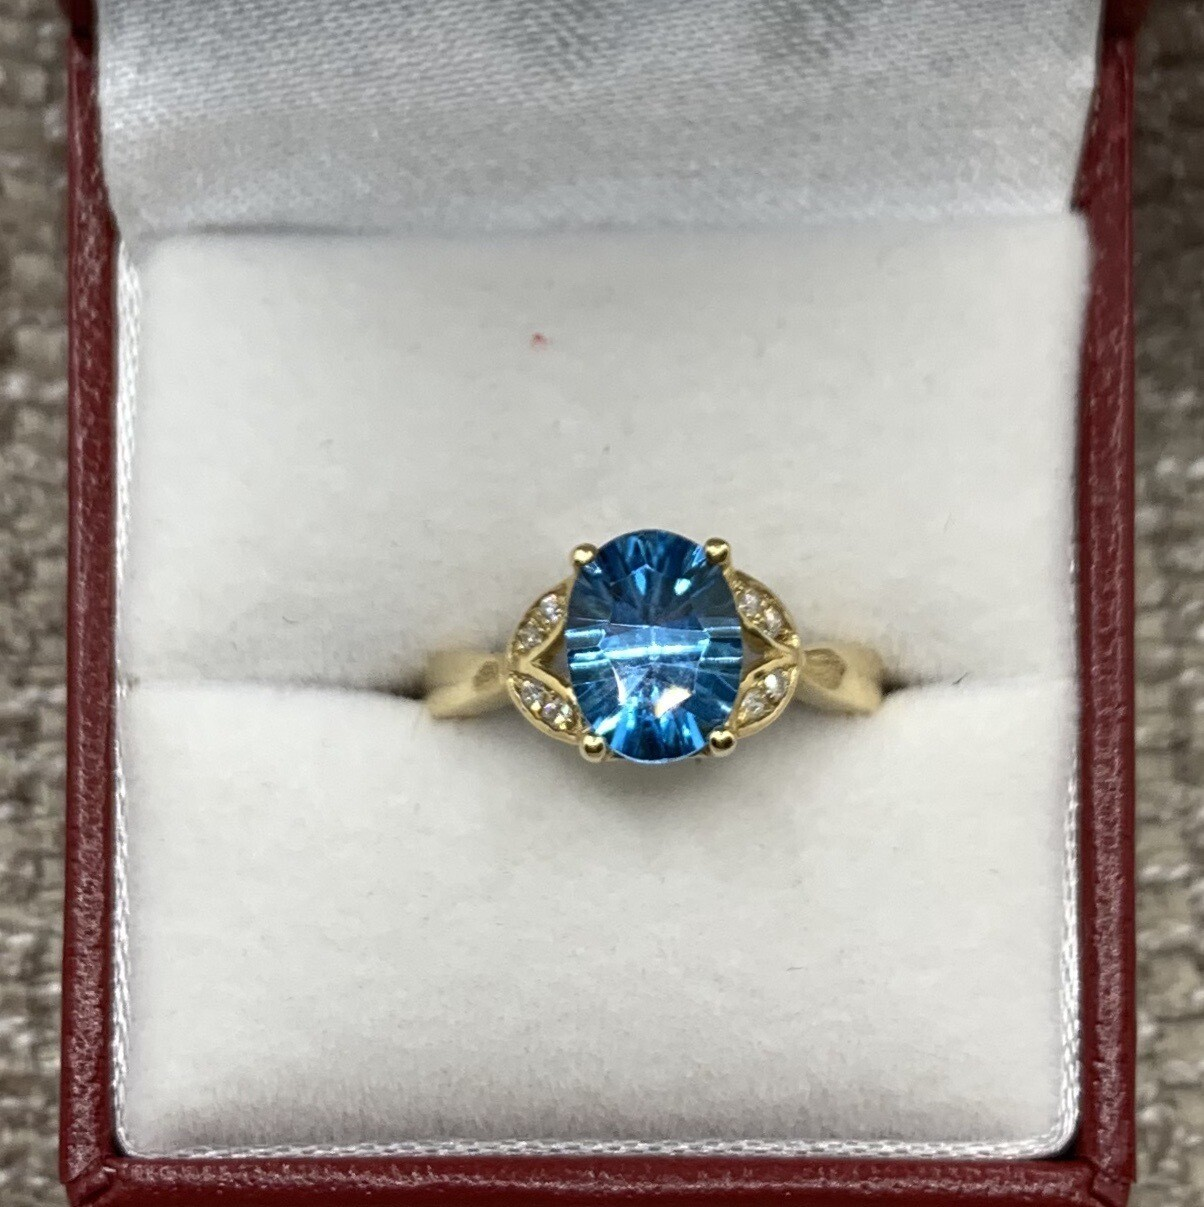 Oval Cut Blue Topaz With Diamond Accents